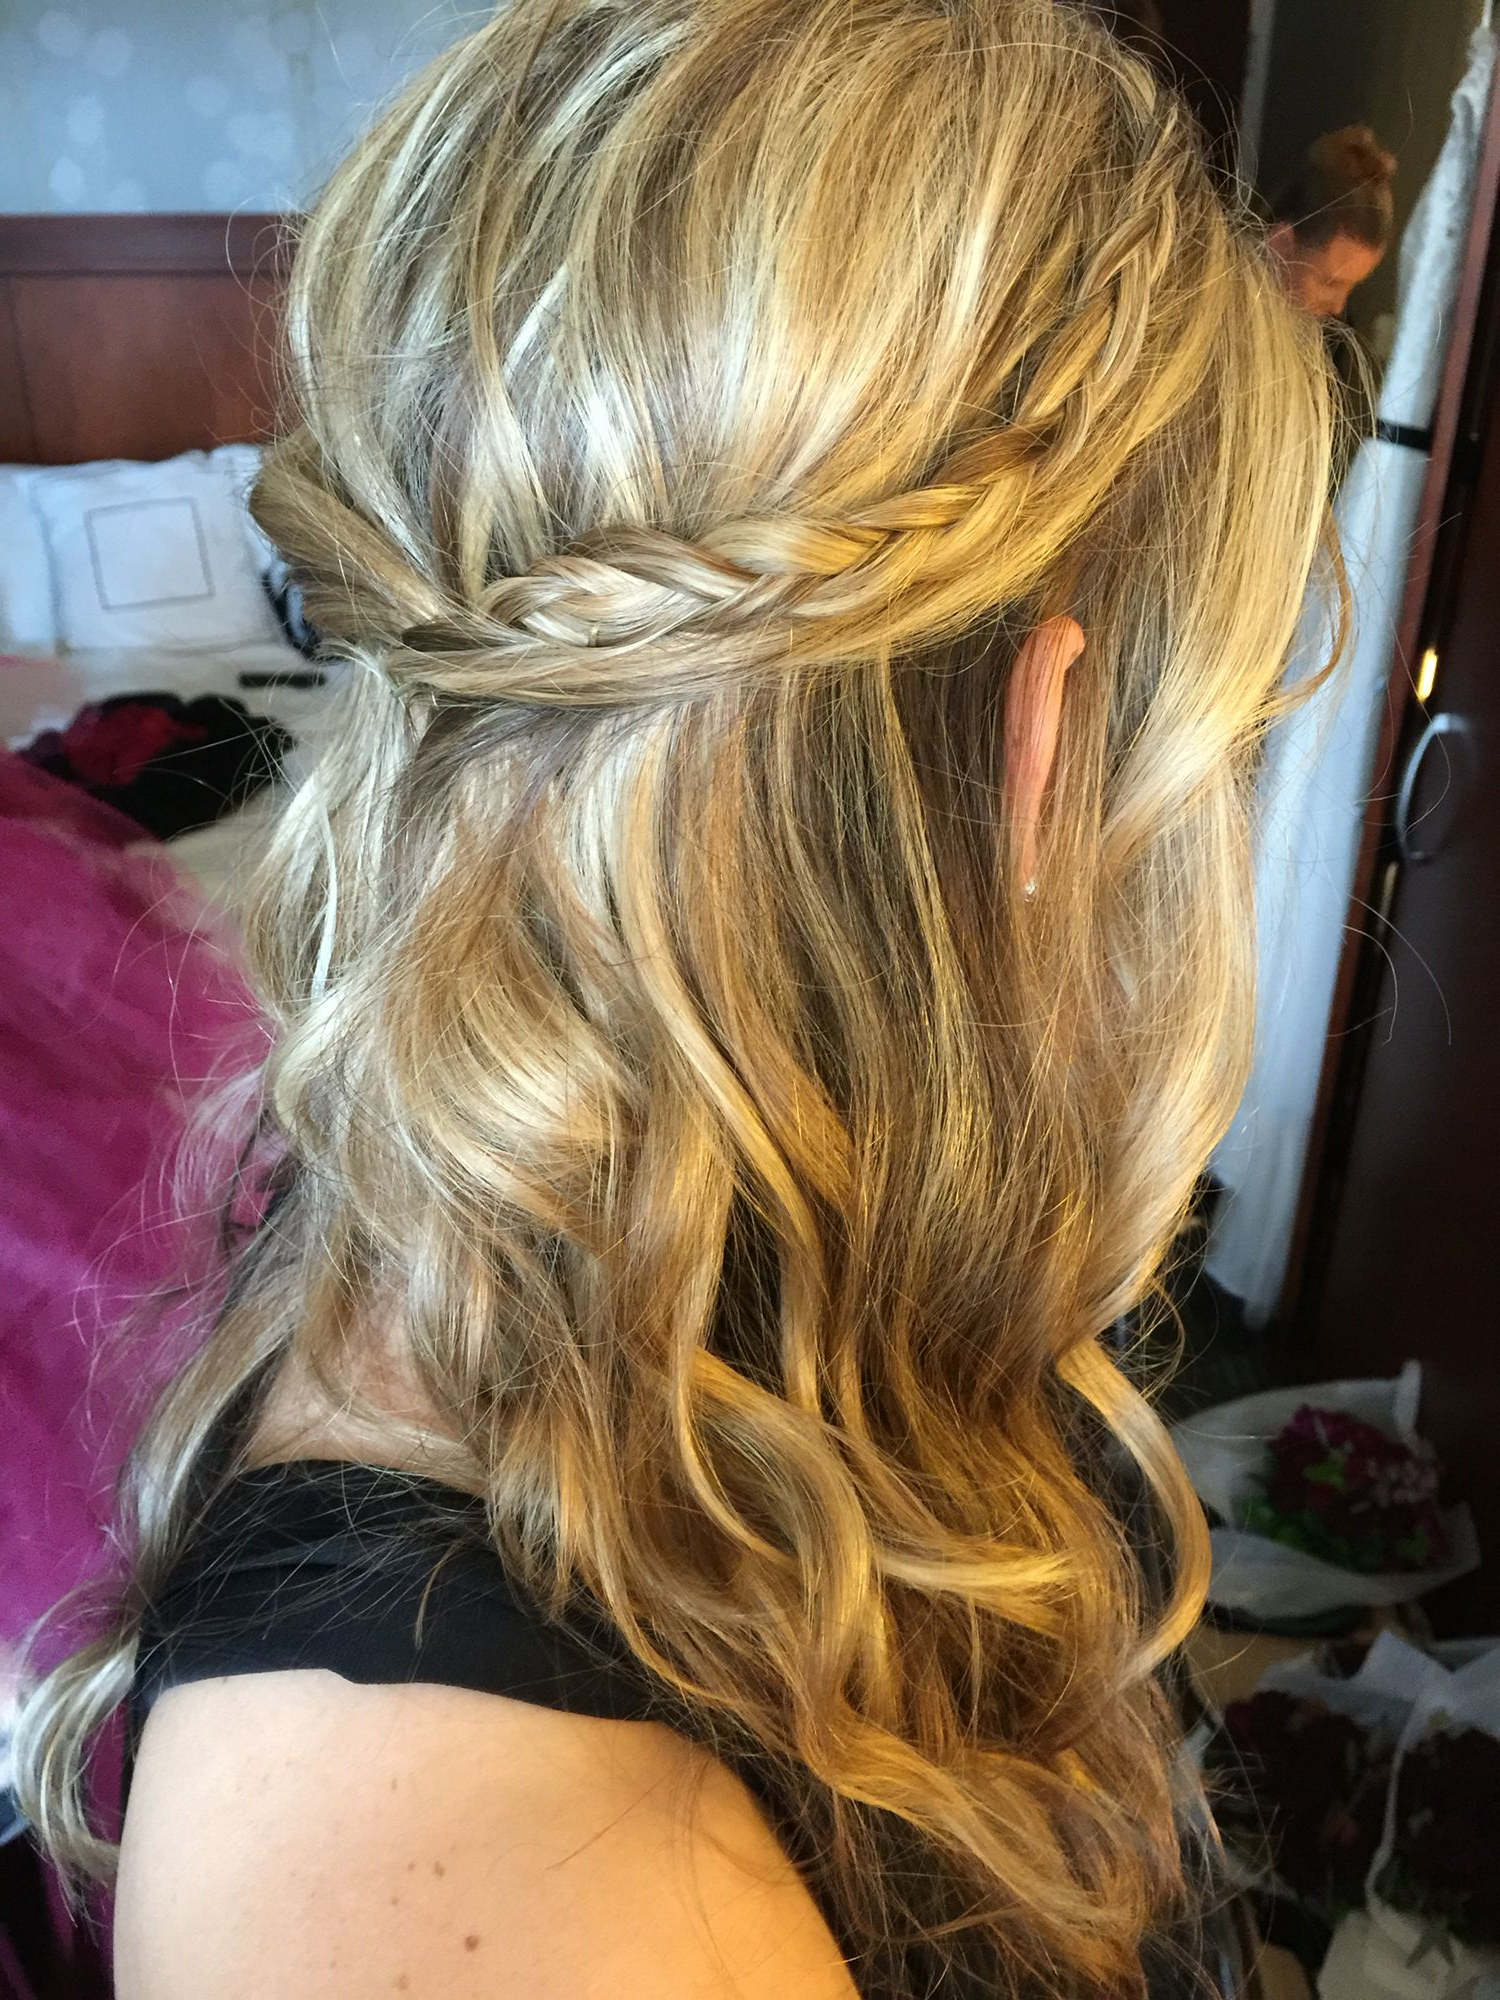 Famous Dimensional Waves In Half Up Wedding Hairstyles With Medium Length Half Up Hair, Braids, Curls, Soft Waves For A Wedding (View 9 of 20)